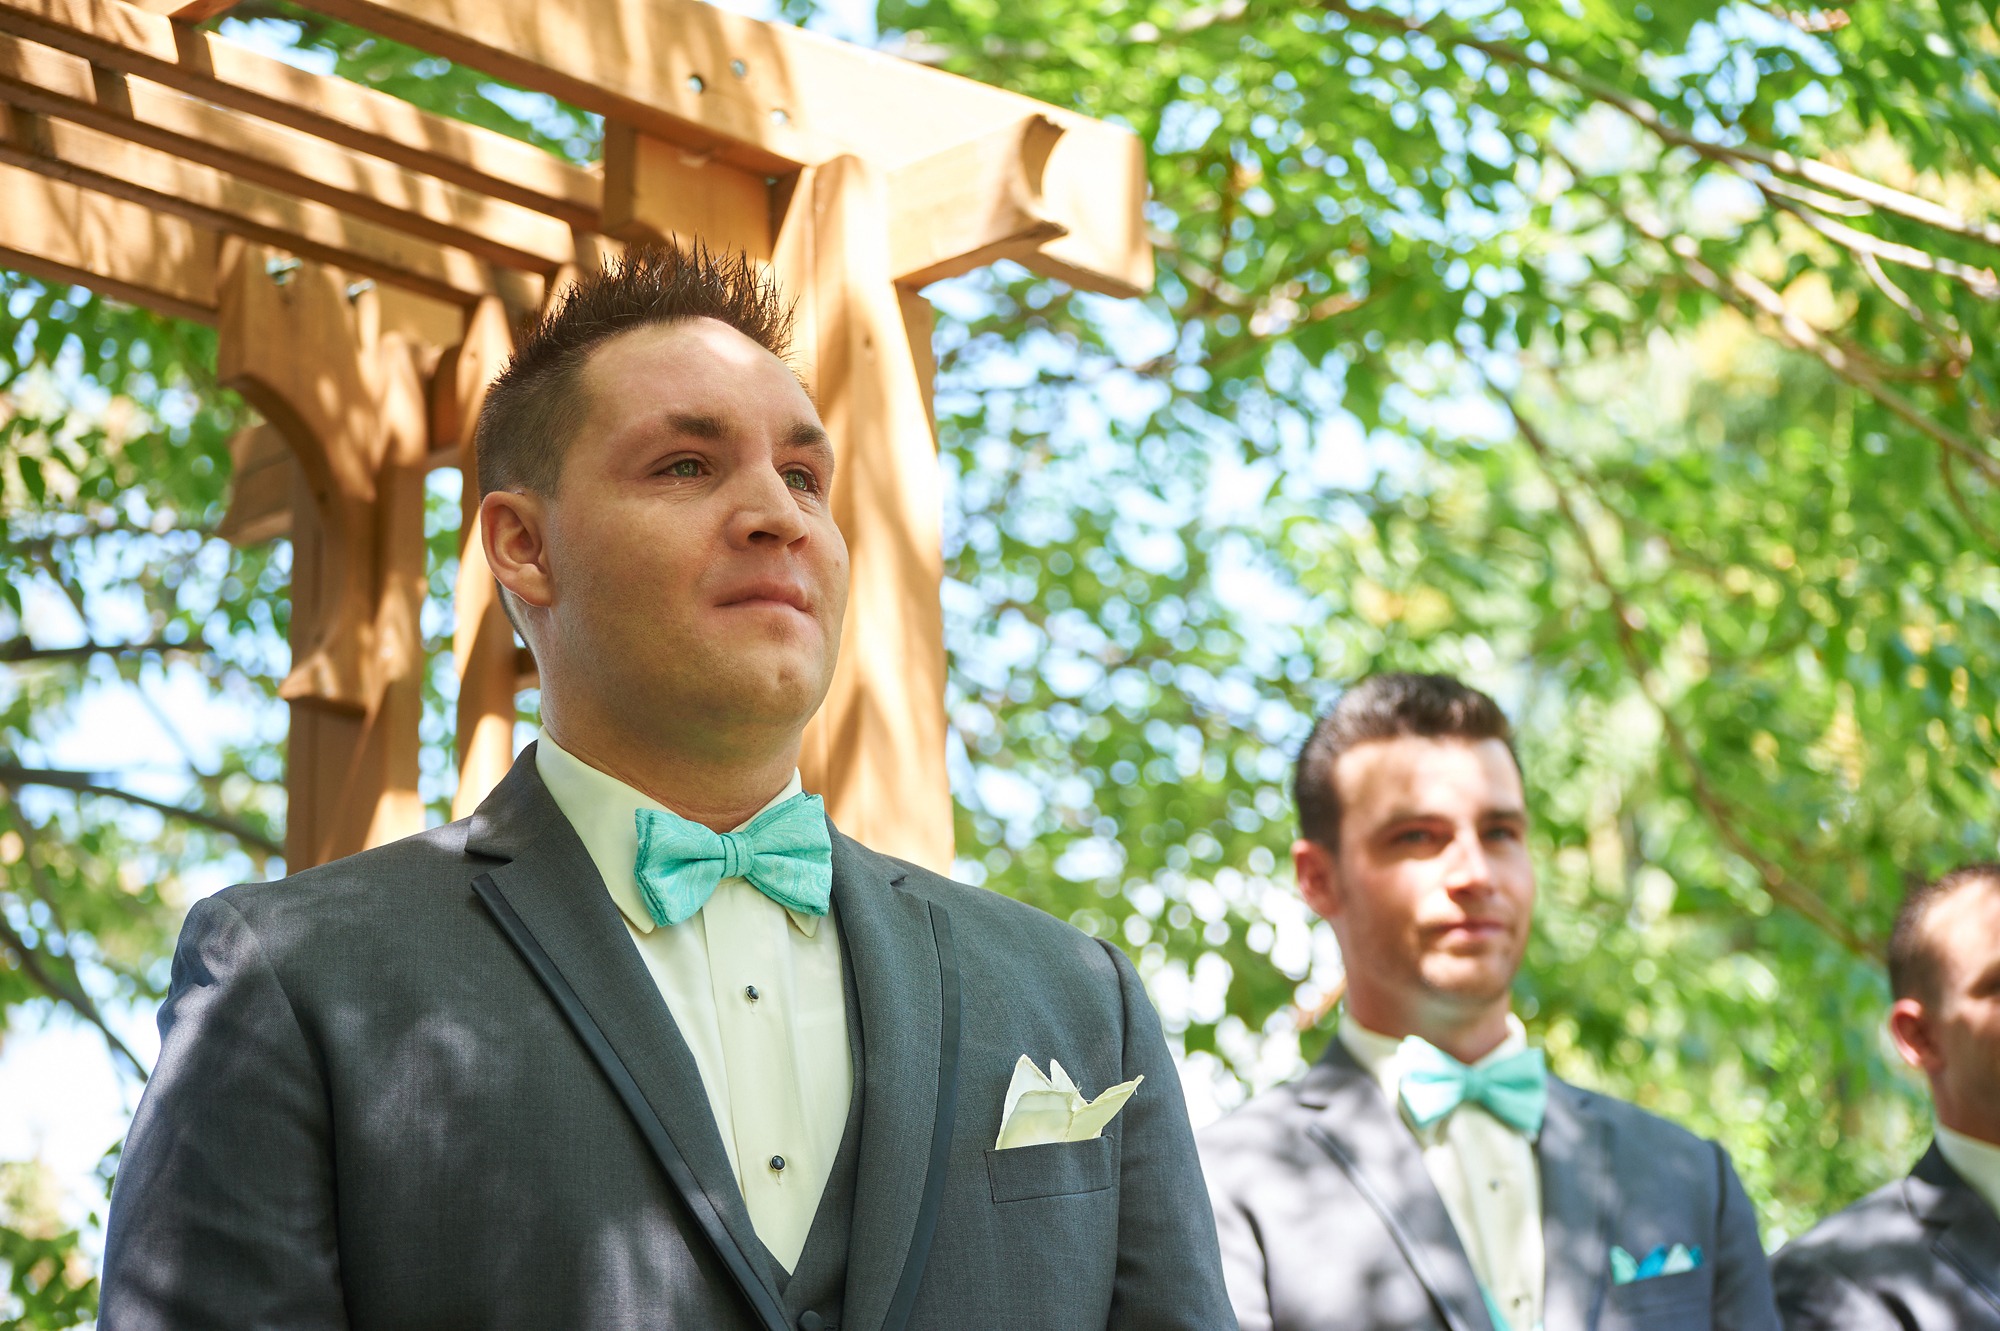 The groom's anticipation